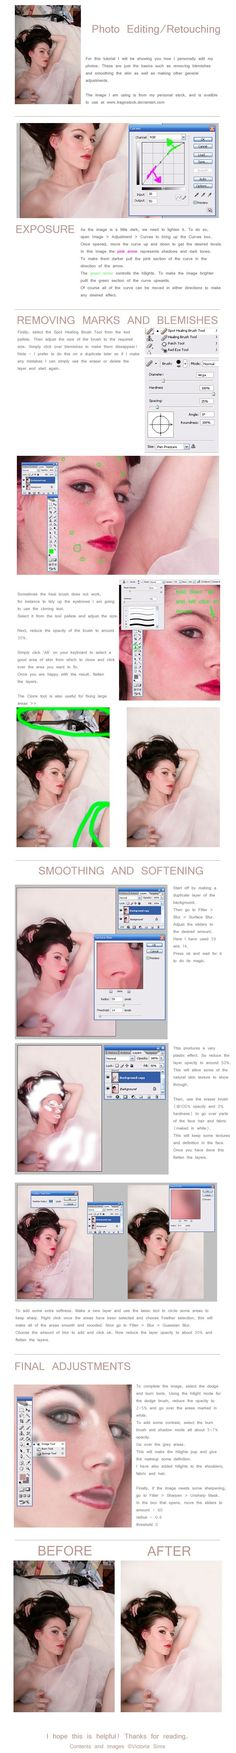 How to Enhance & Retouch an Image - Photoshop Tutorial ...